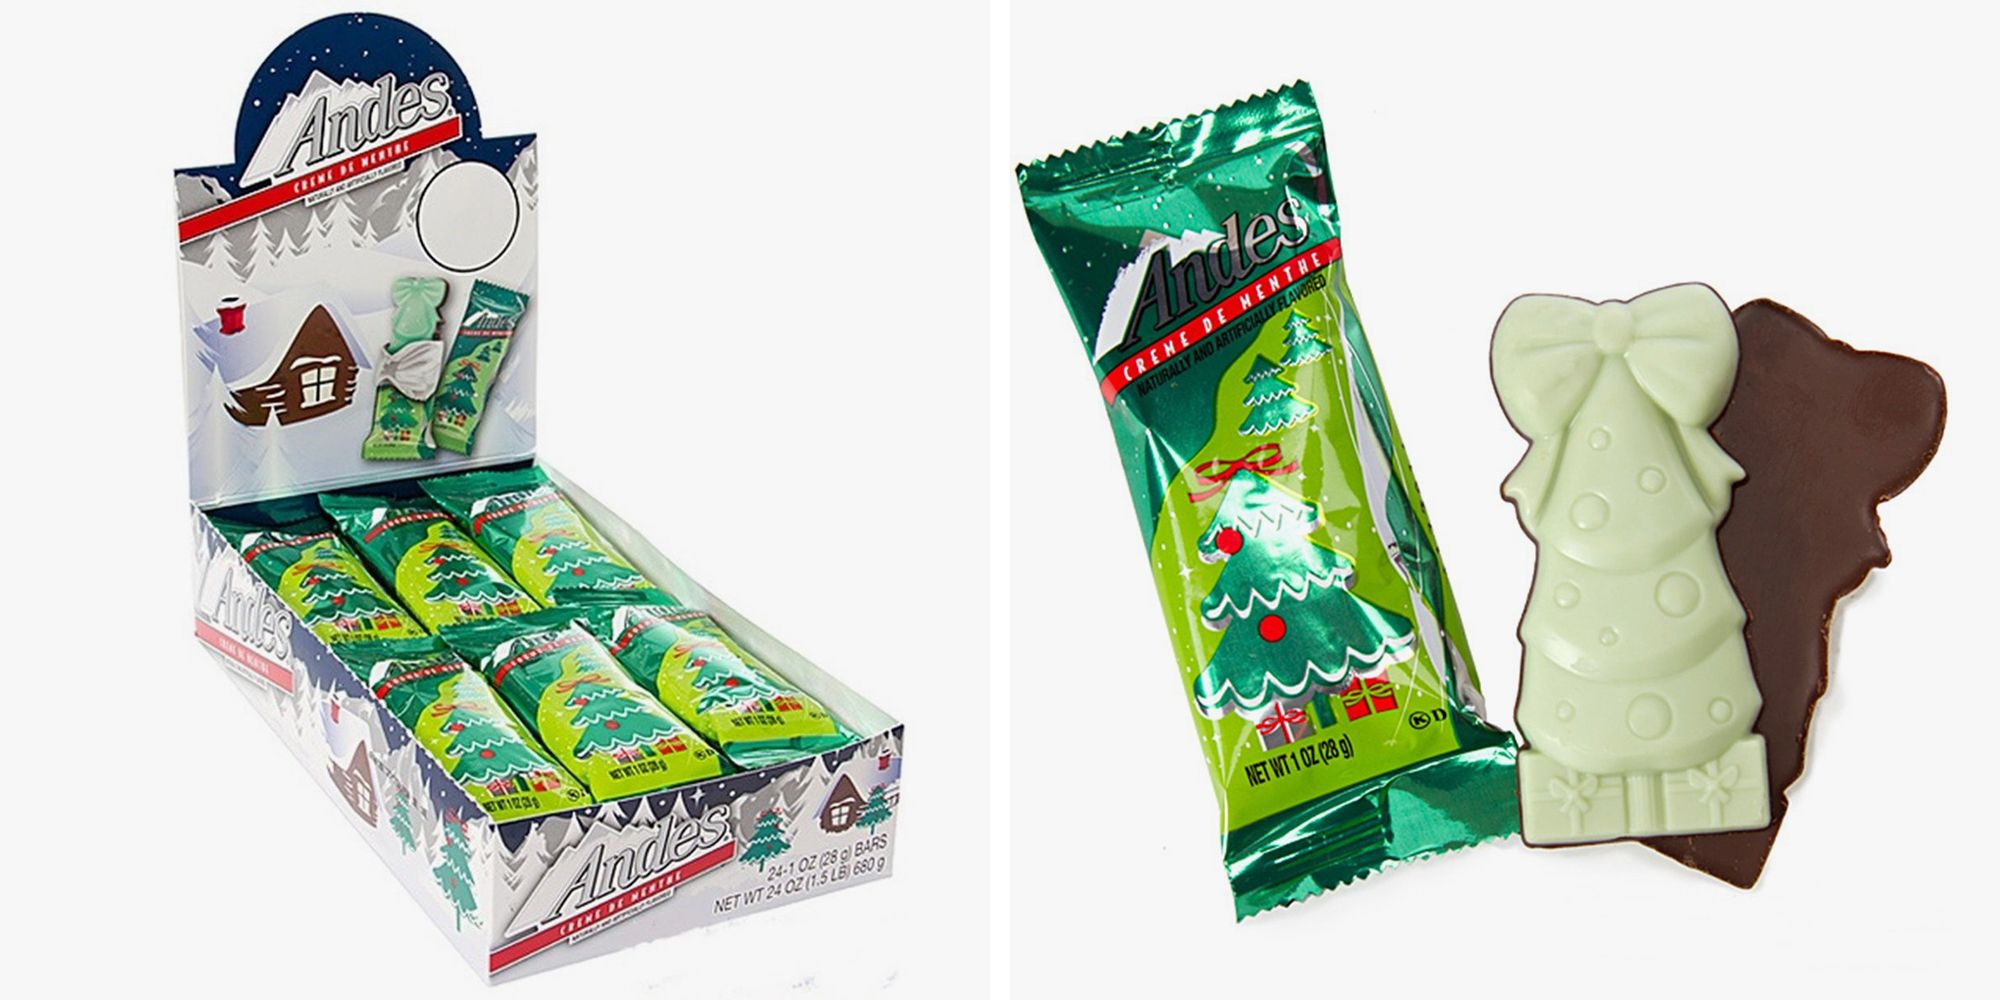 Andes Crème de Menthe Thins Now Come as Christmas Trees for the Holidays